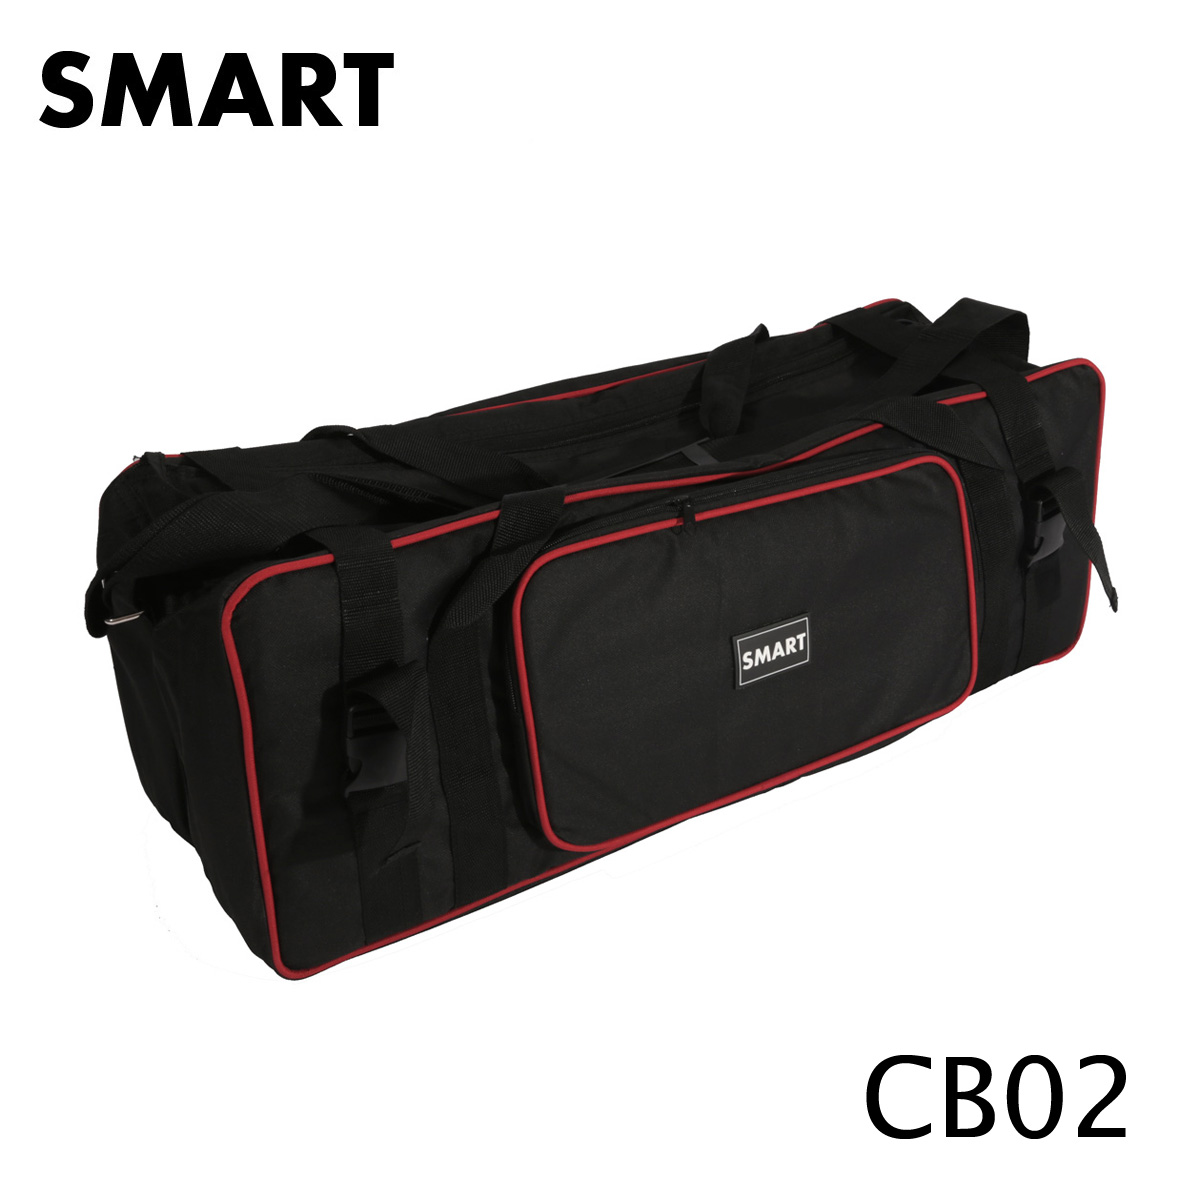 SMART CB02 lighthouse suit bag 75CM